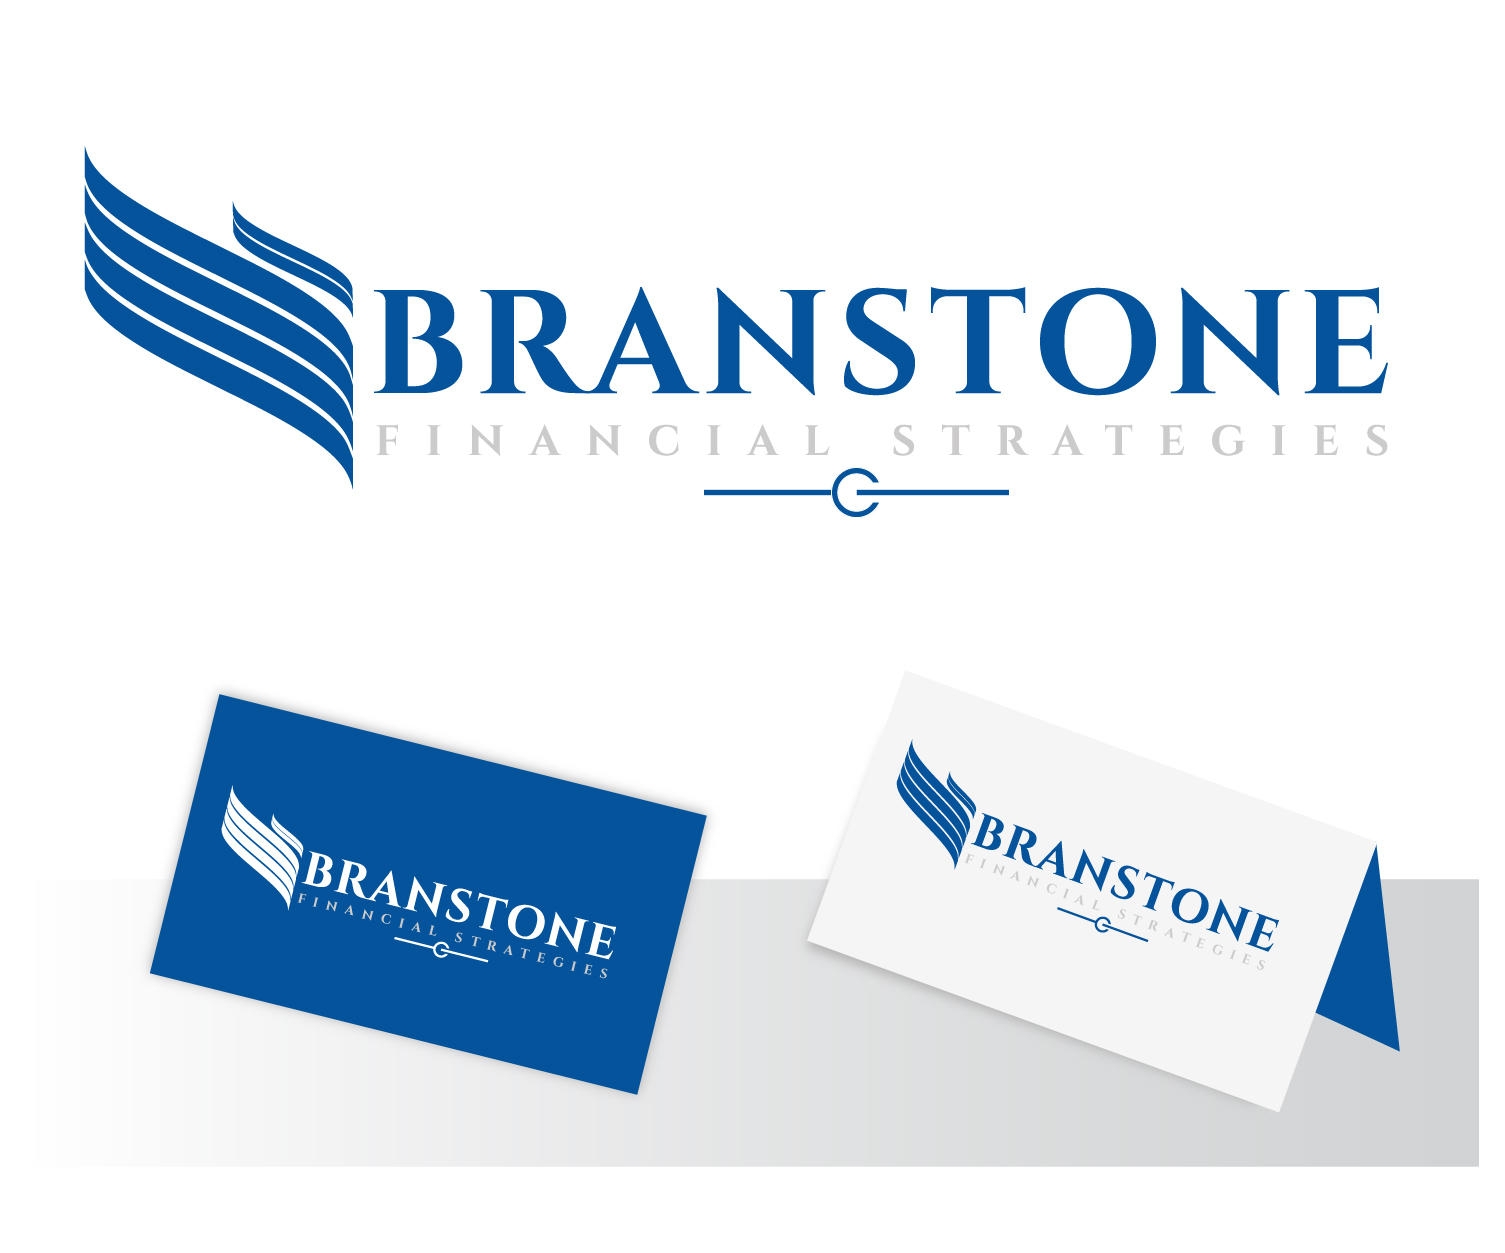 Logo Design by VENTSISLAV KOVACHEV - Entry No. 119 in the Logo Design Contest Inspiring Logo Design for Branstone Financial Strategies.